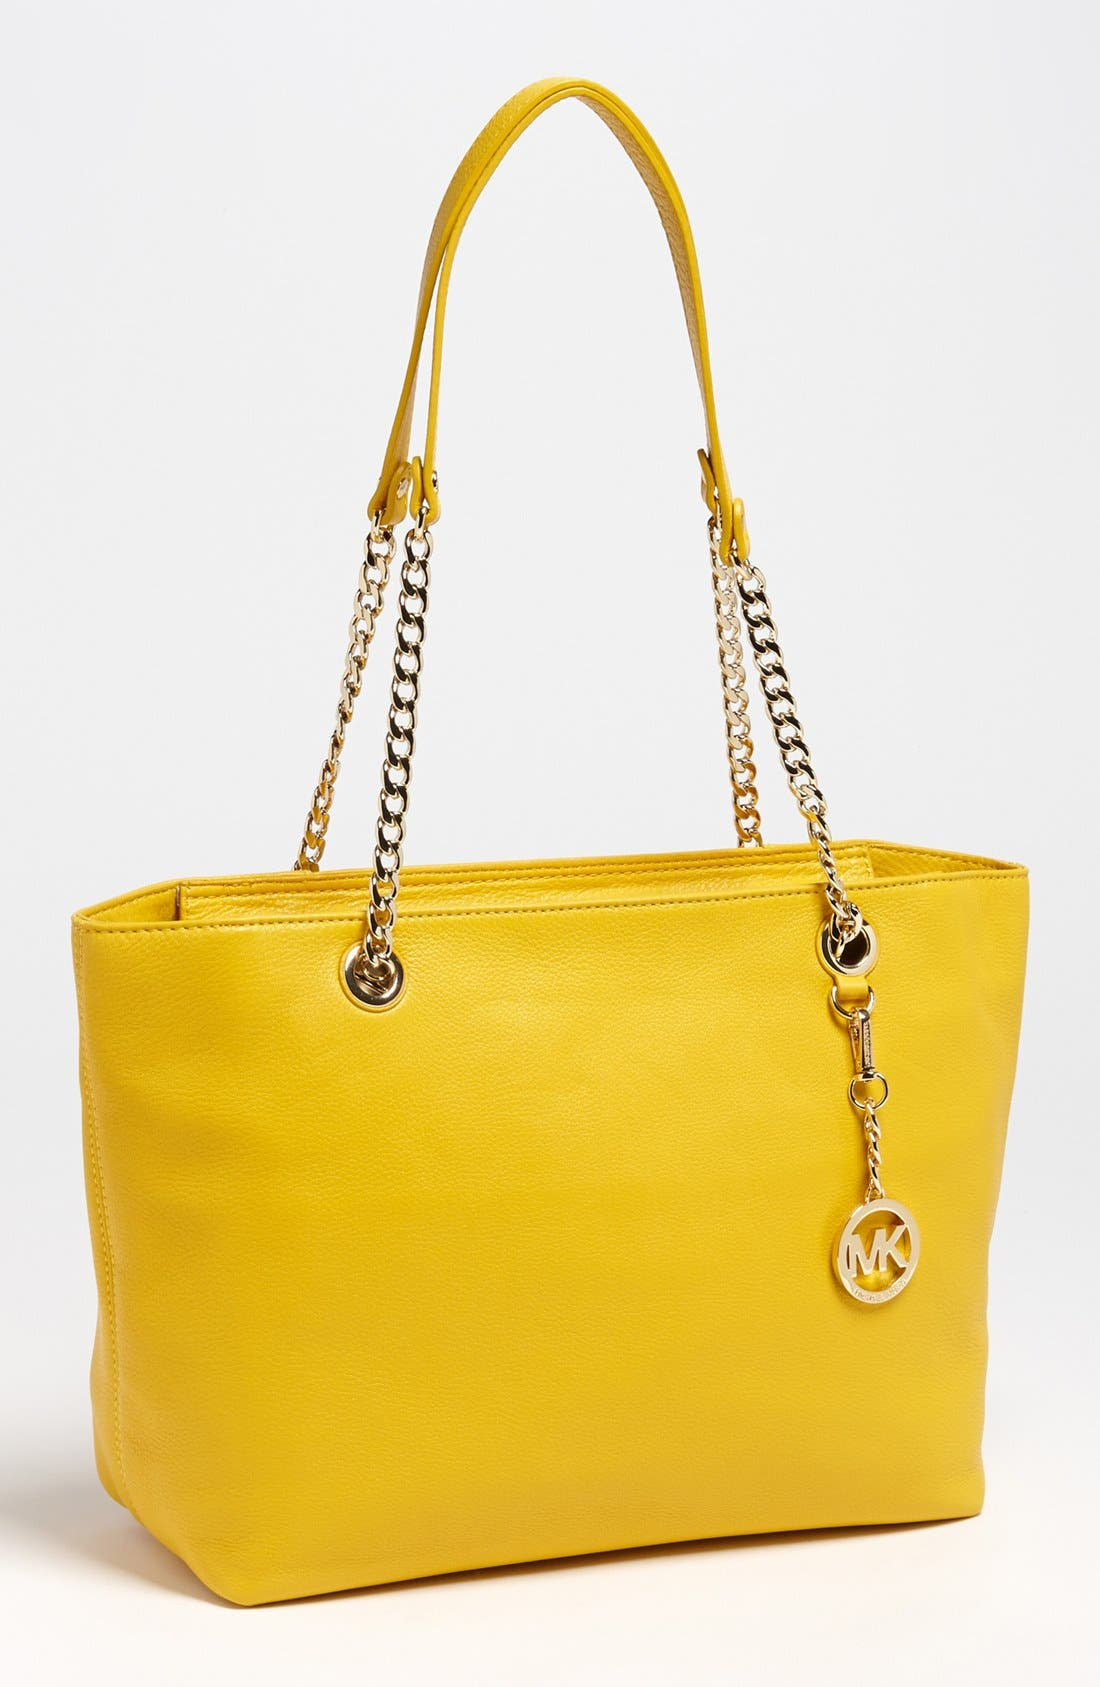 Alternate Image 1 Selected - MICHAEL Michael Kors 'Jet Set - Large' Tote